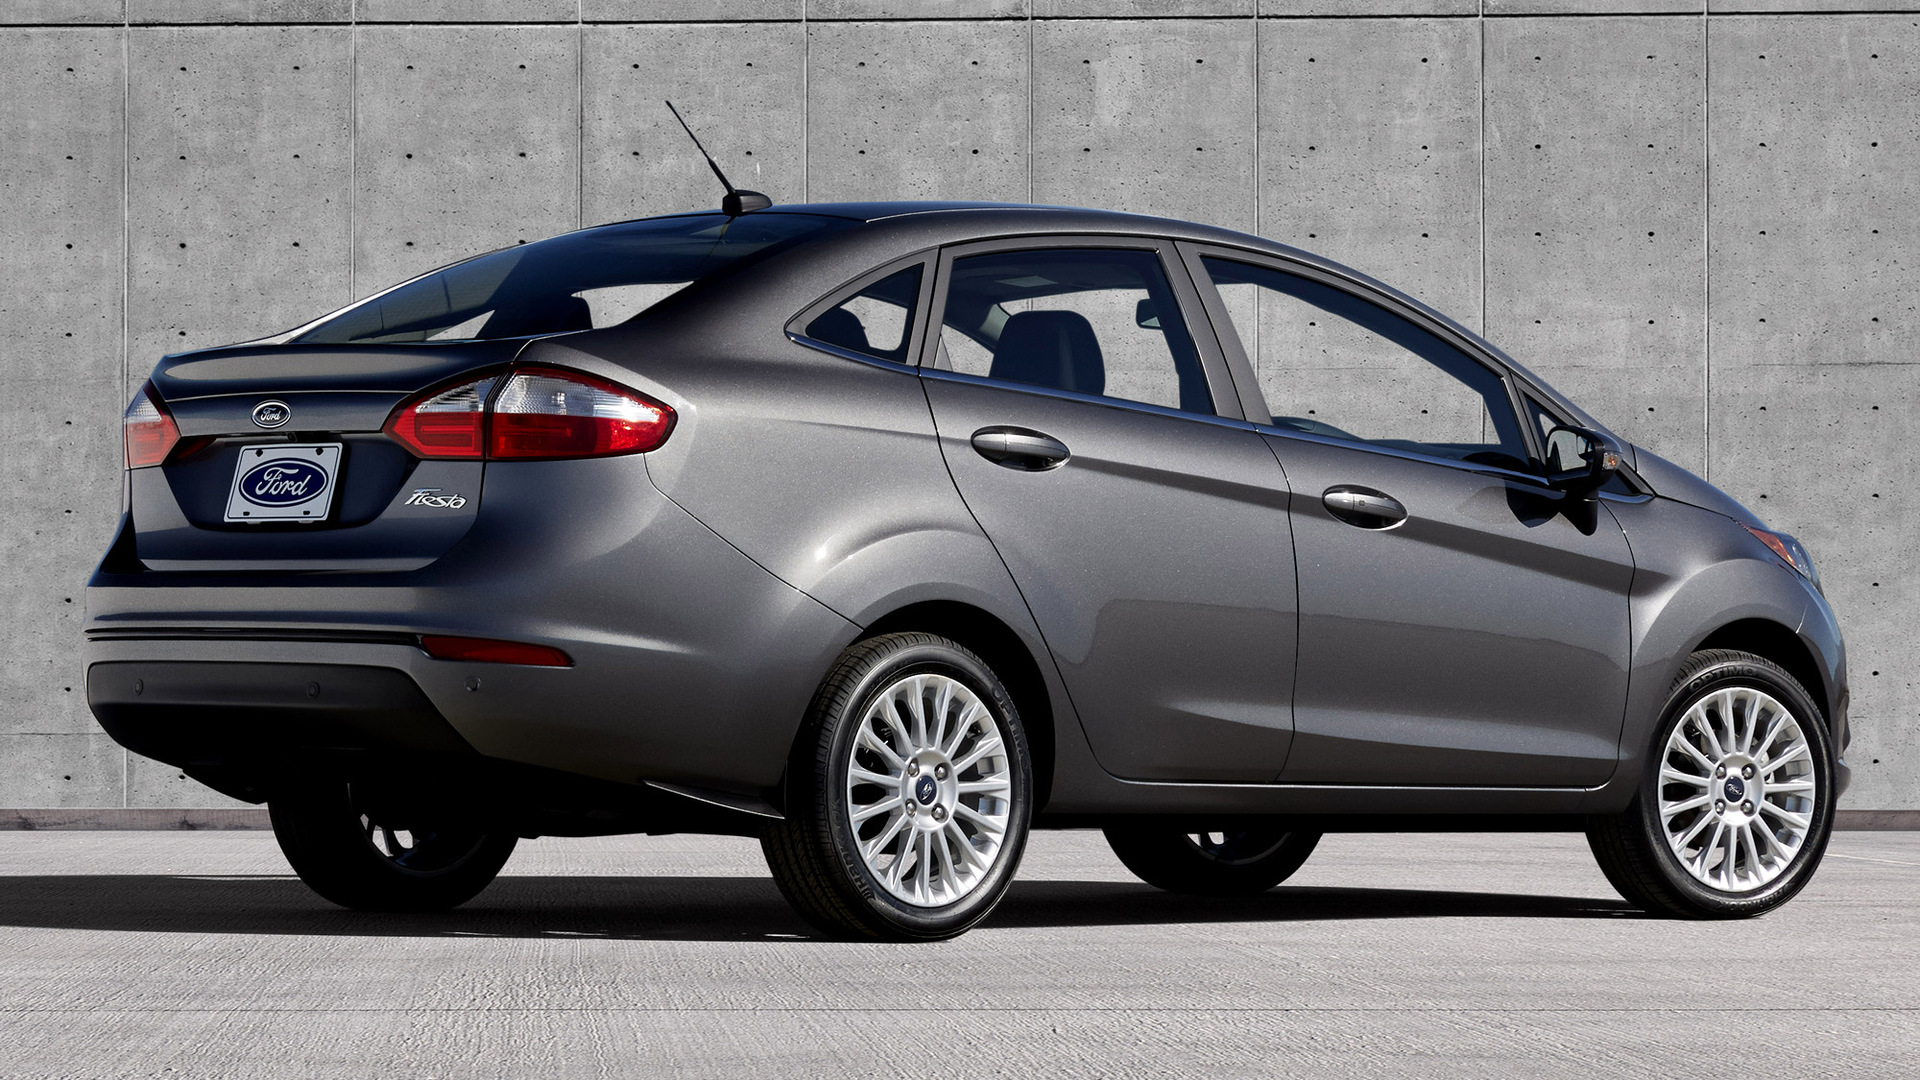 Ford Fiesta Titanium Sedan 2014 US Wallpapers And HD Images